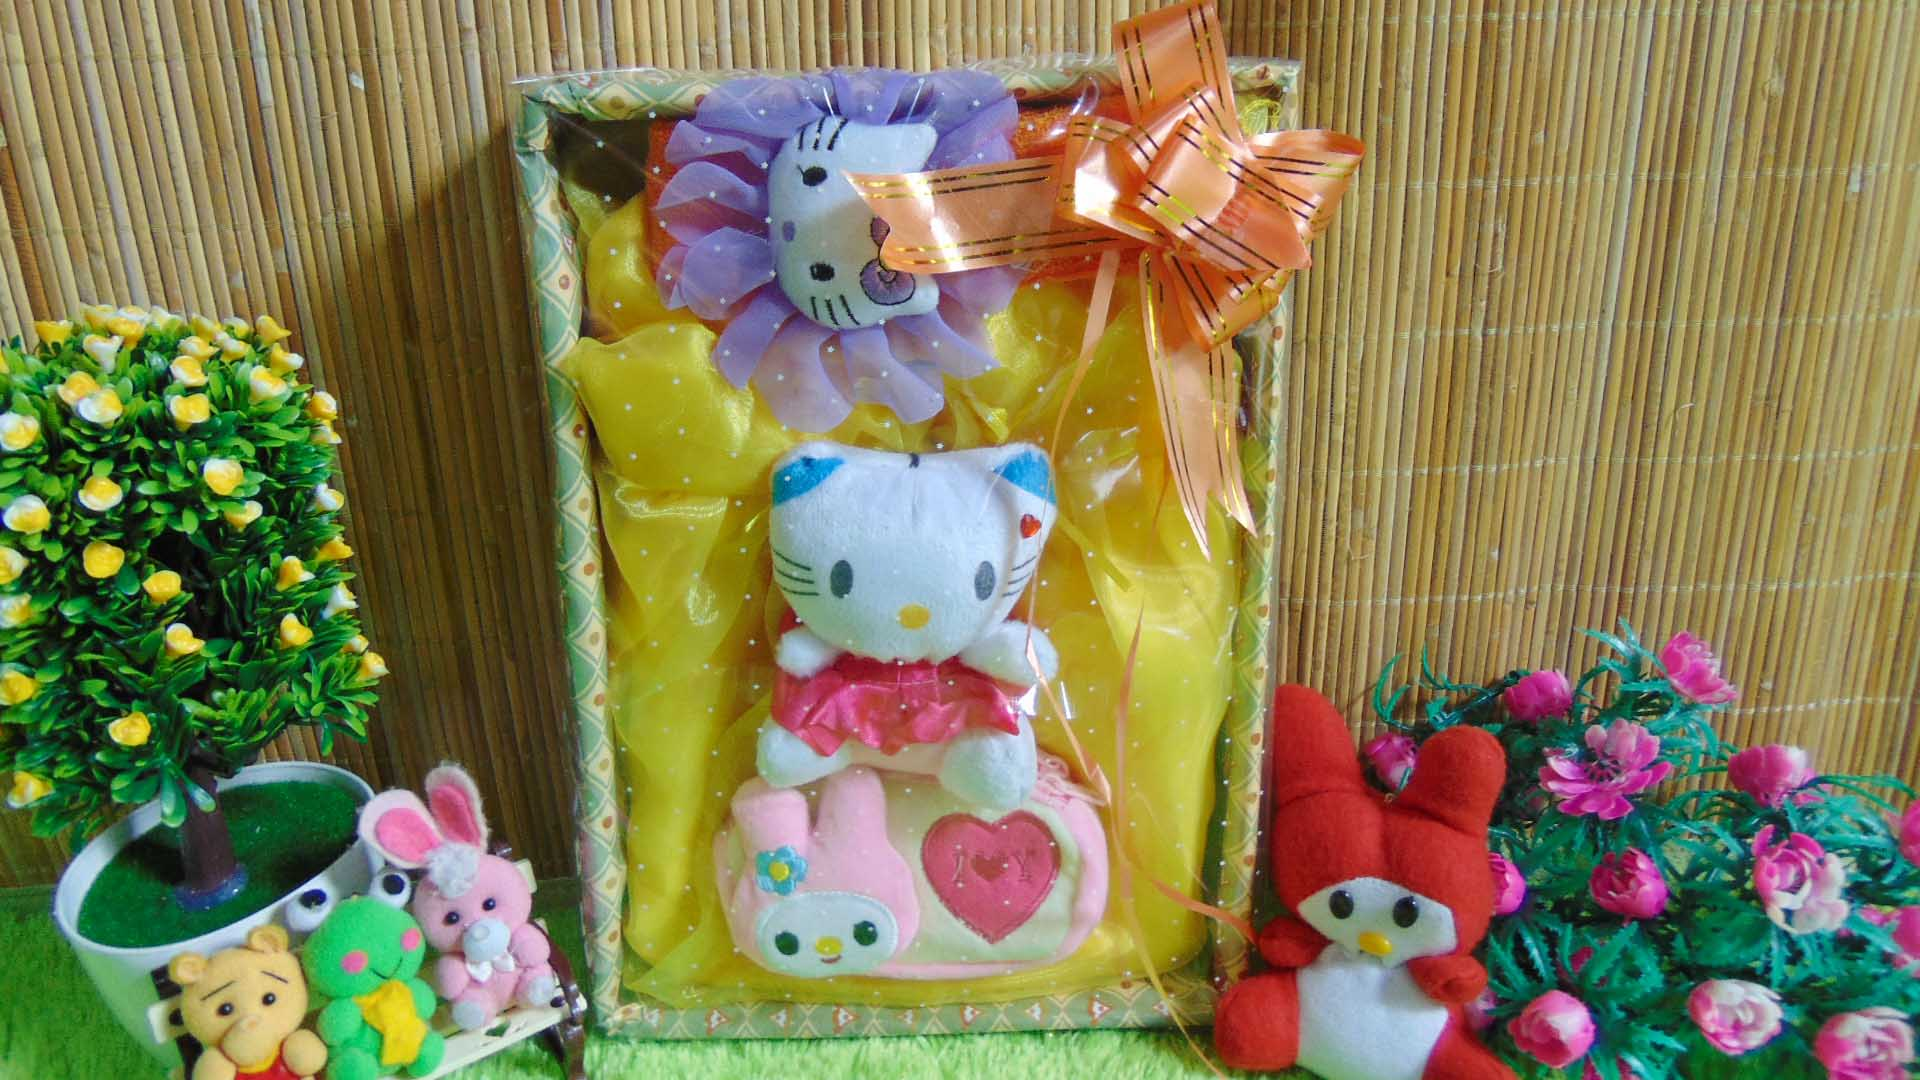 Paket Kado Bayi Baby Gift Dress Kuning Mekar Hello Kitty Series 57 terdiri Dress pesta,bandana hello kitty dan dompet cantik, serta boneka hello kitty cantik